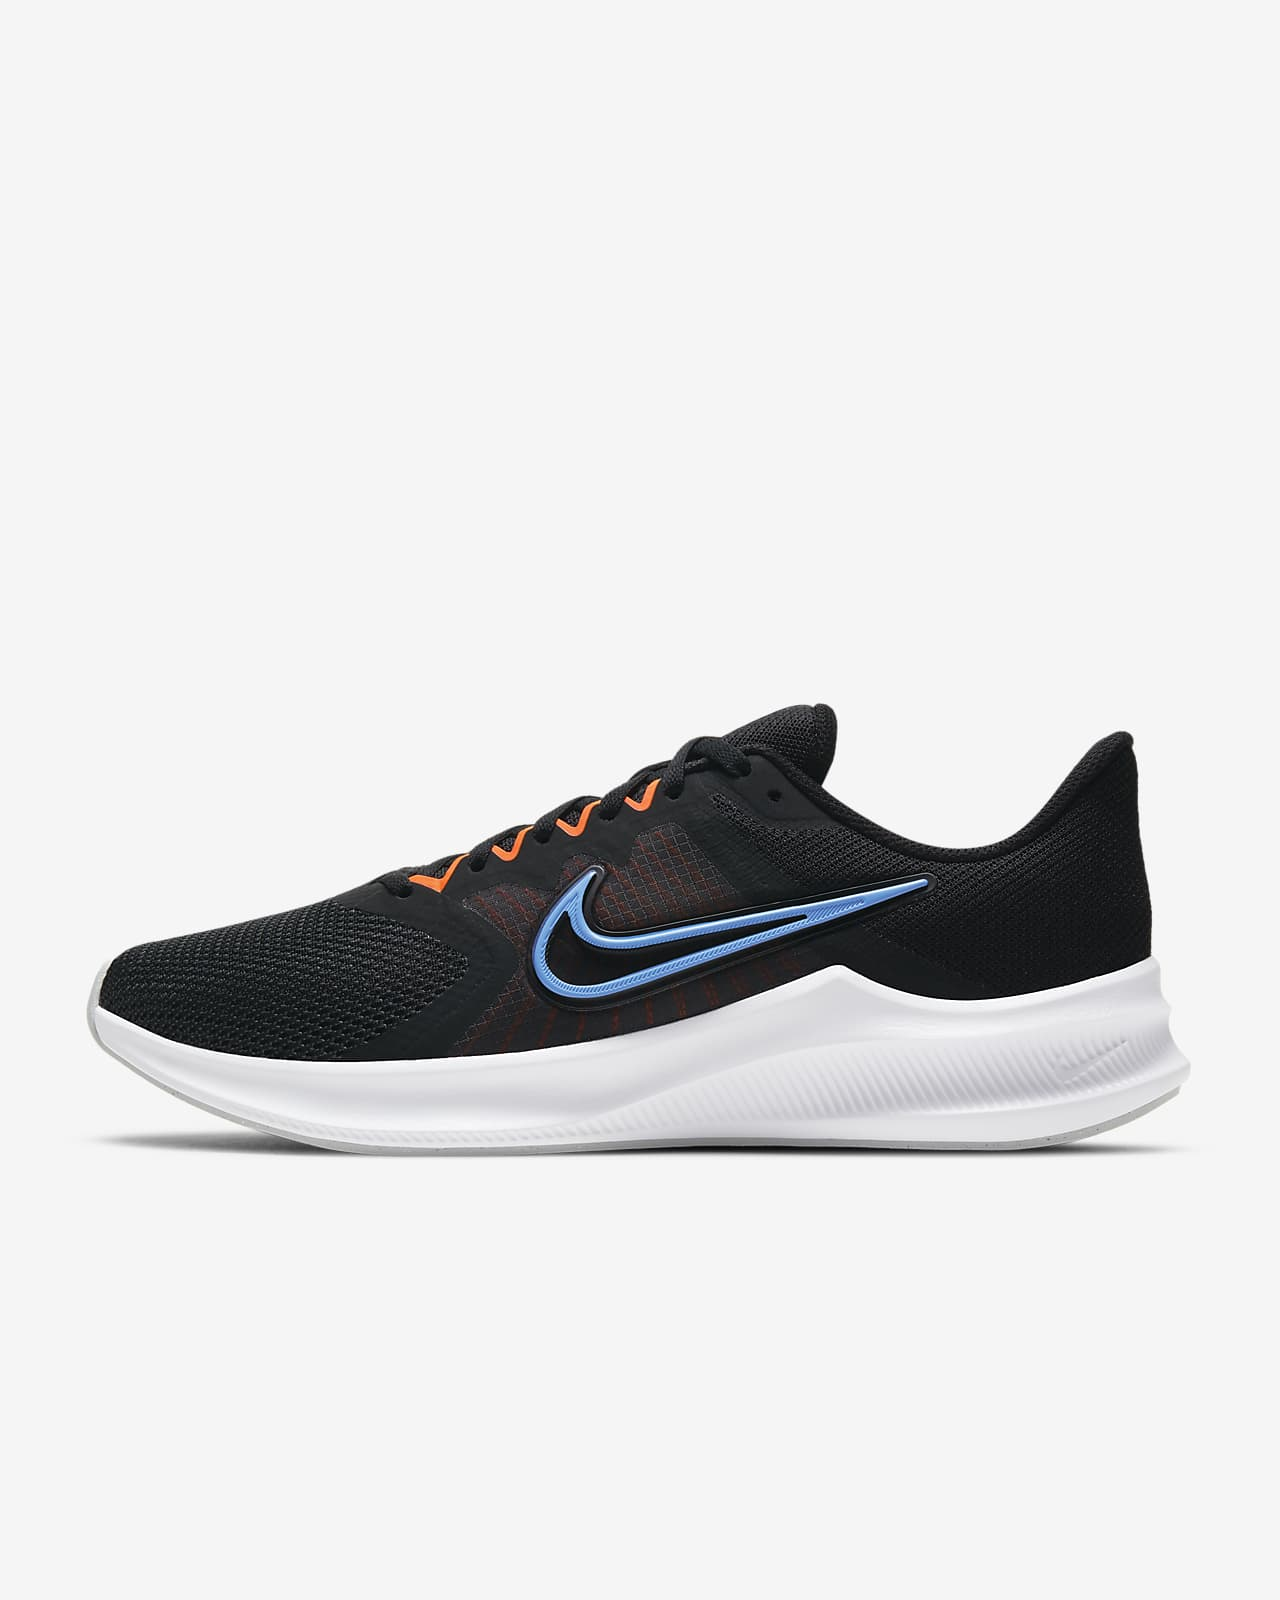 Chaussures de running Nike Downshifter 11 pour Homme